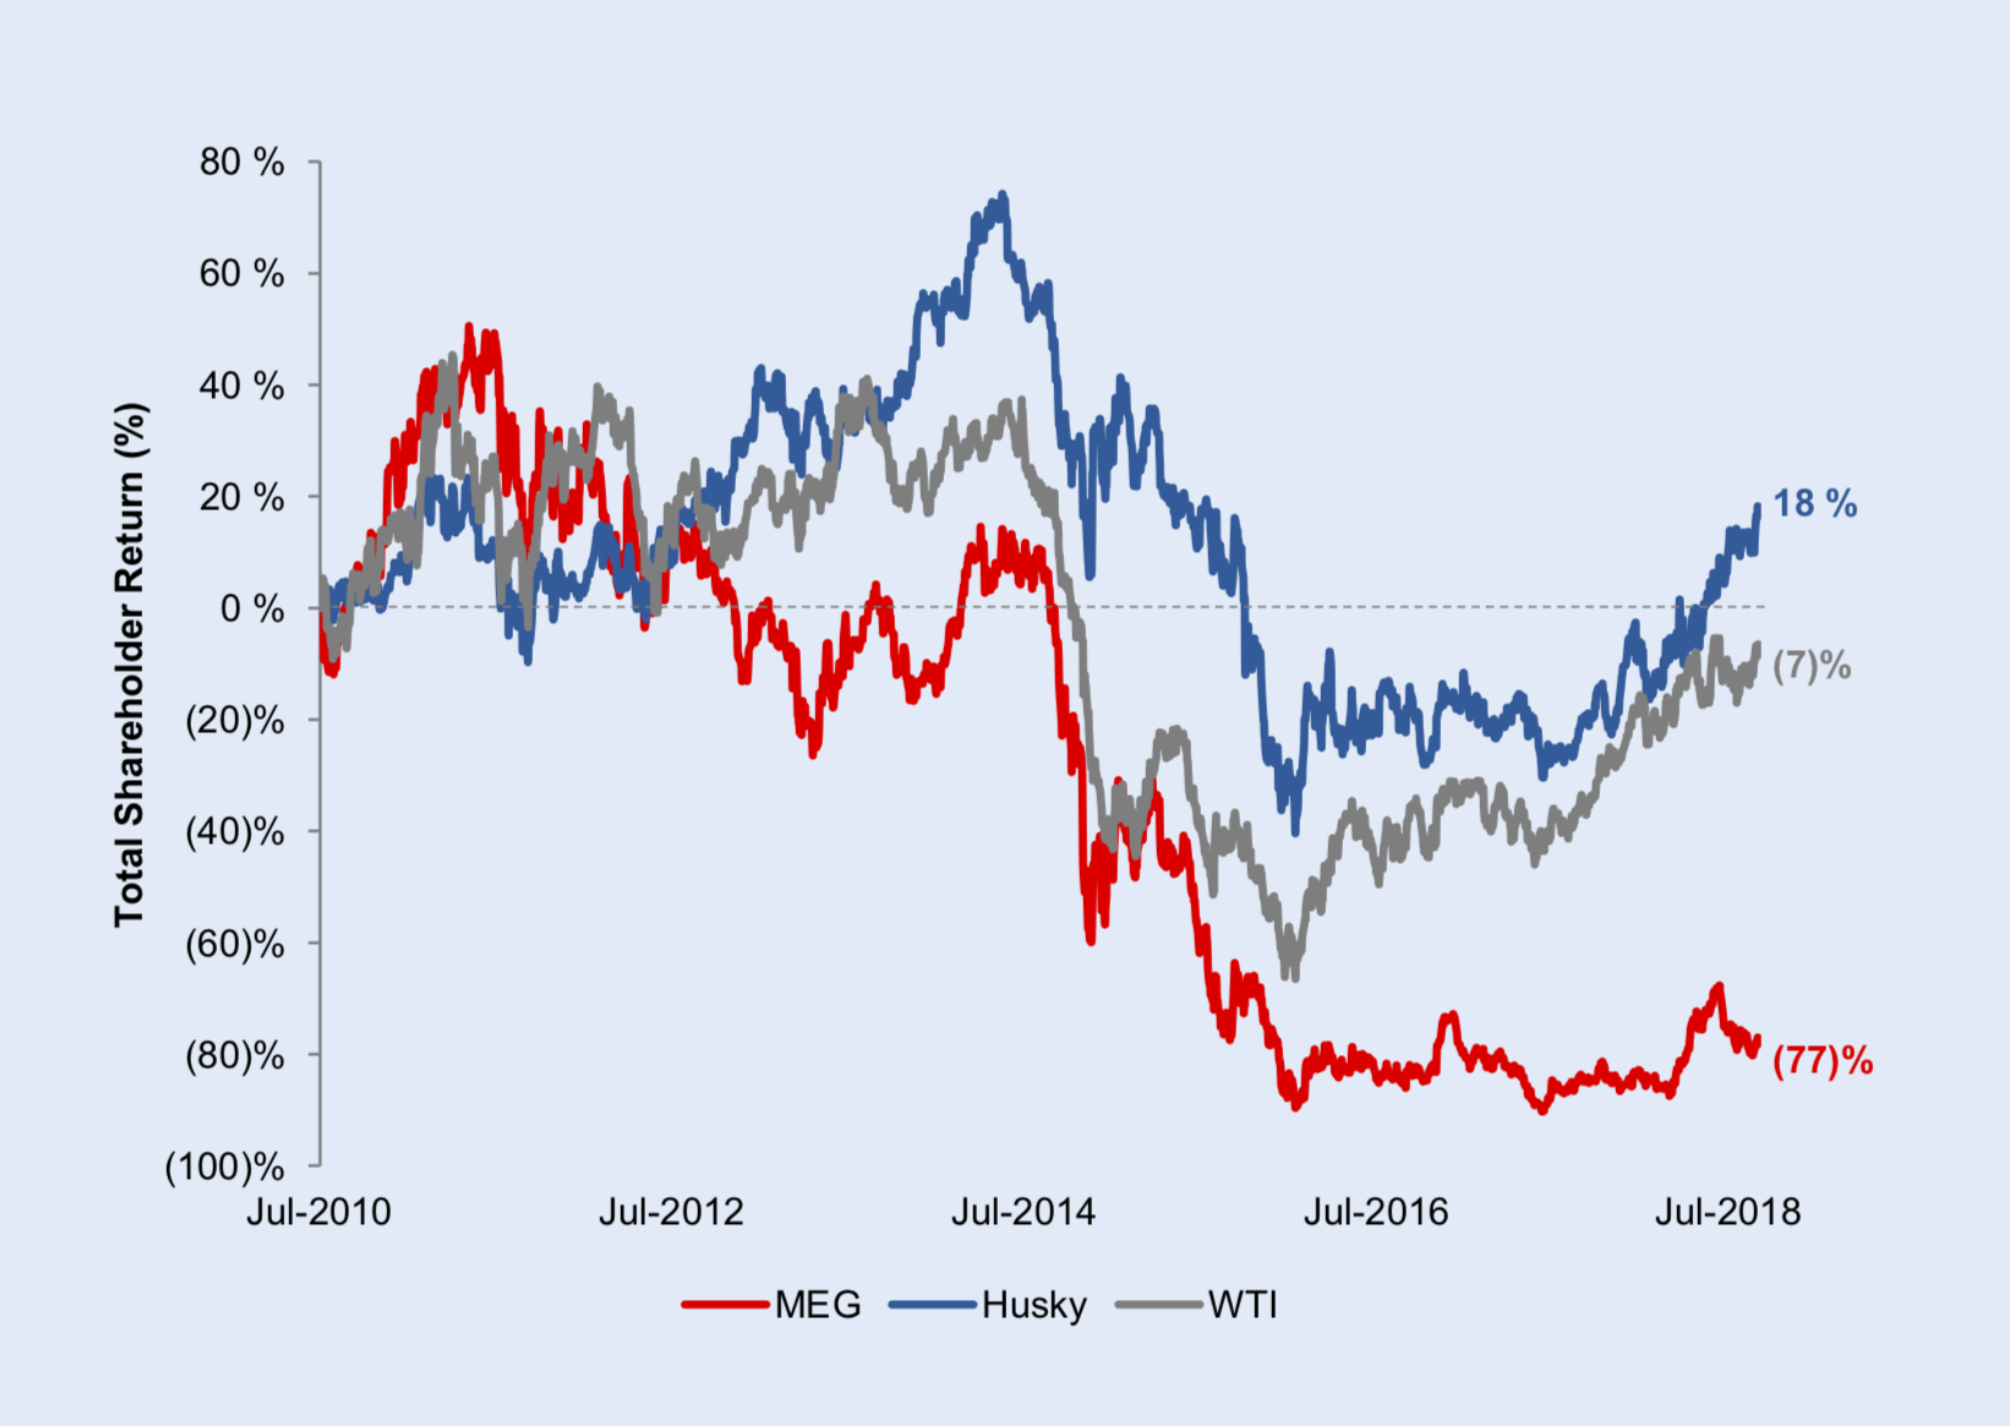 HISTORICAL SHARE PRICES (COURTESY HUSKY ENERGY)